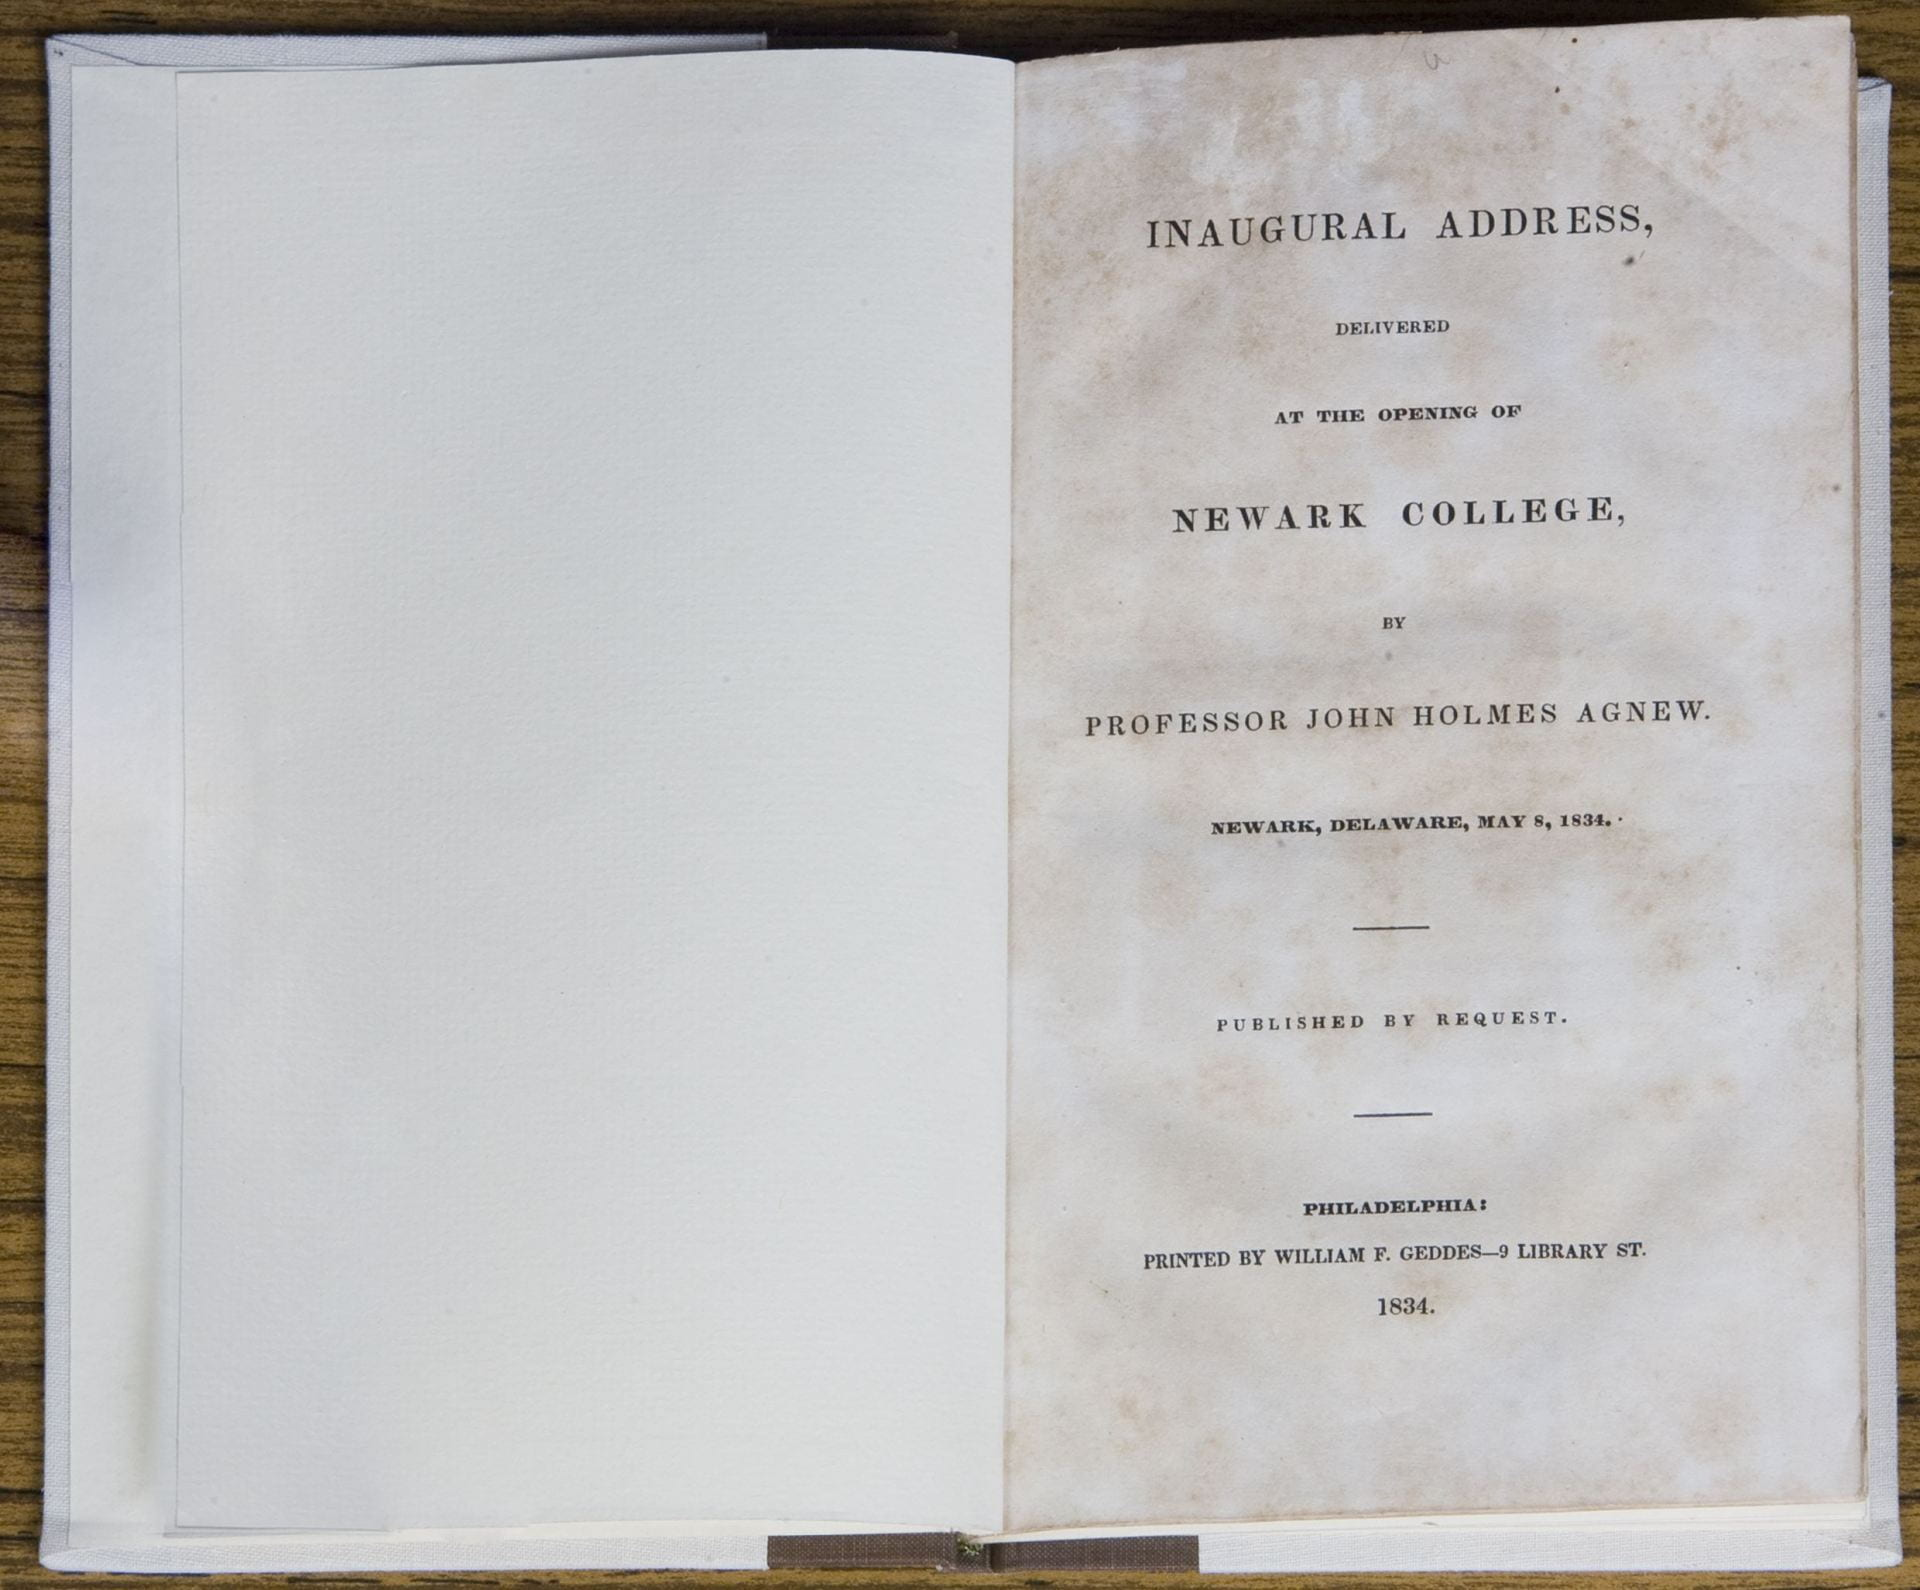 Cover page of the Inaugural Address delivered at the opening of Newark College in 1834.